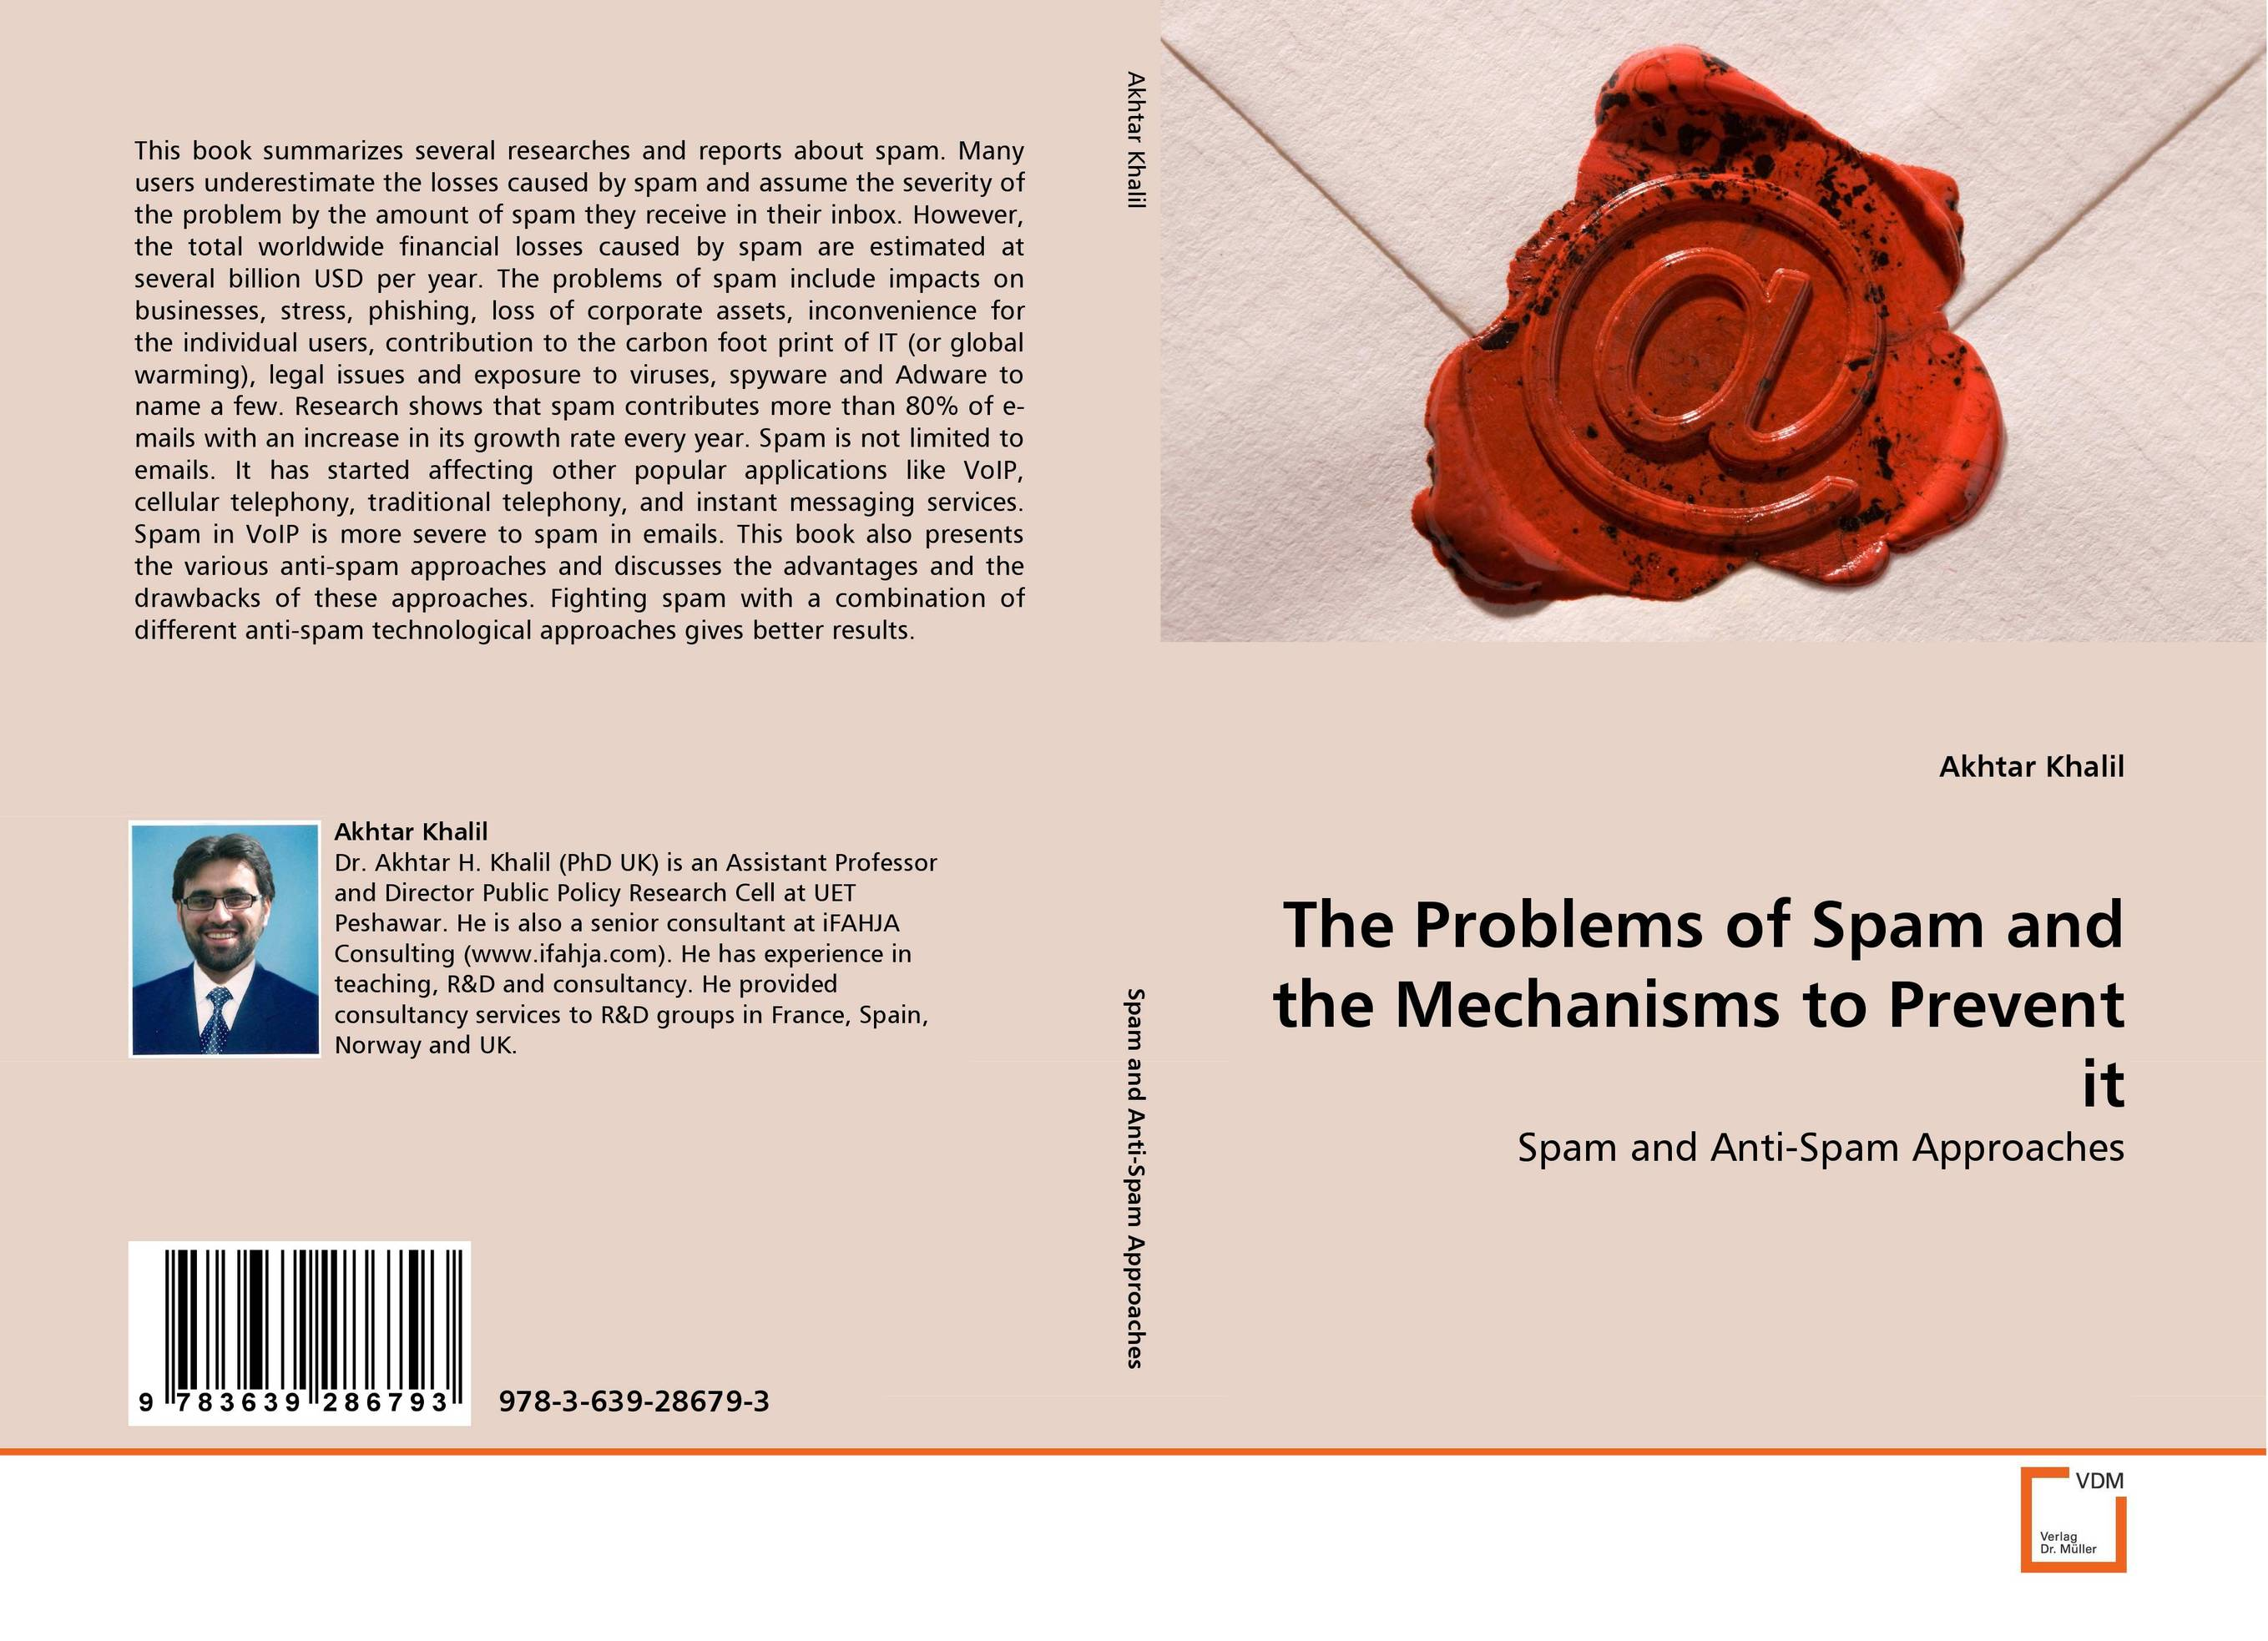 The Problems of Spam and the Mechanisms to Prevent it